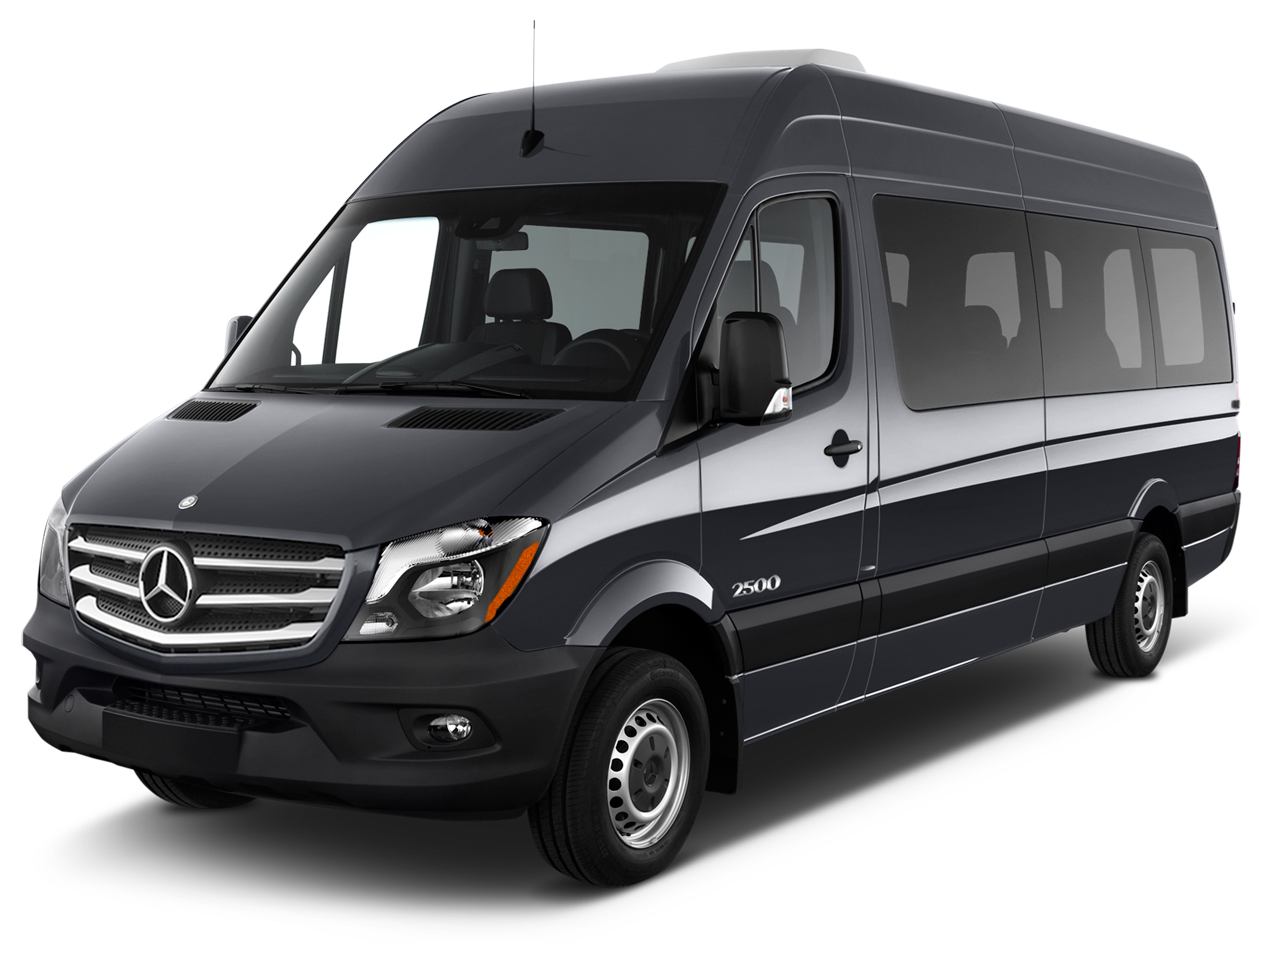 New And Used Mercedes Benz Sprinter Passenger Van Prices Photos Reviews Specs The Car